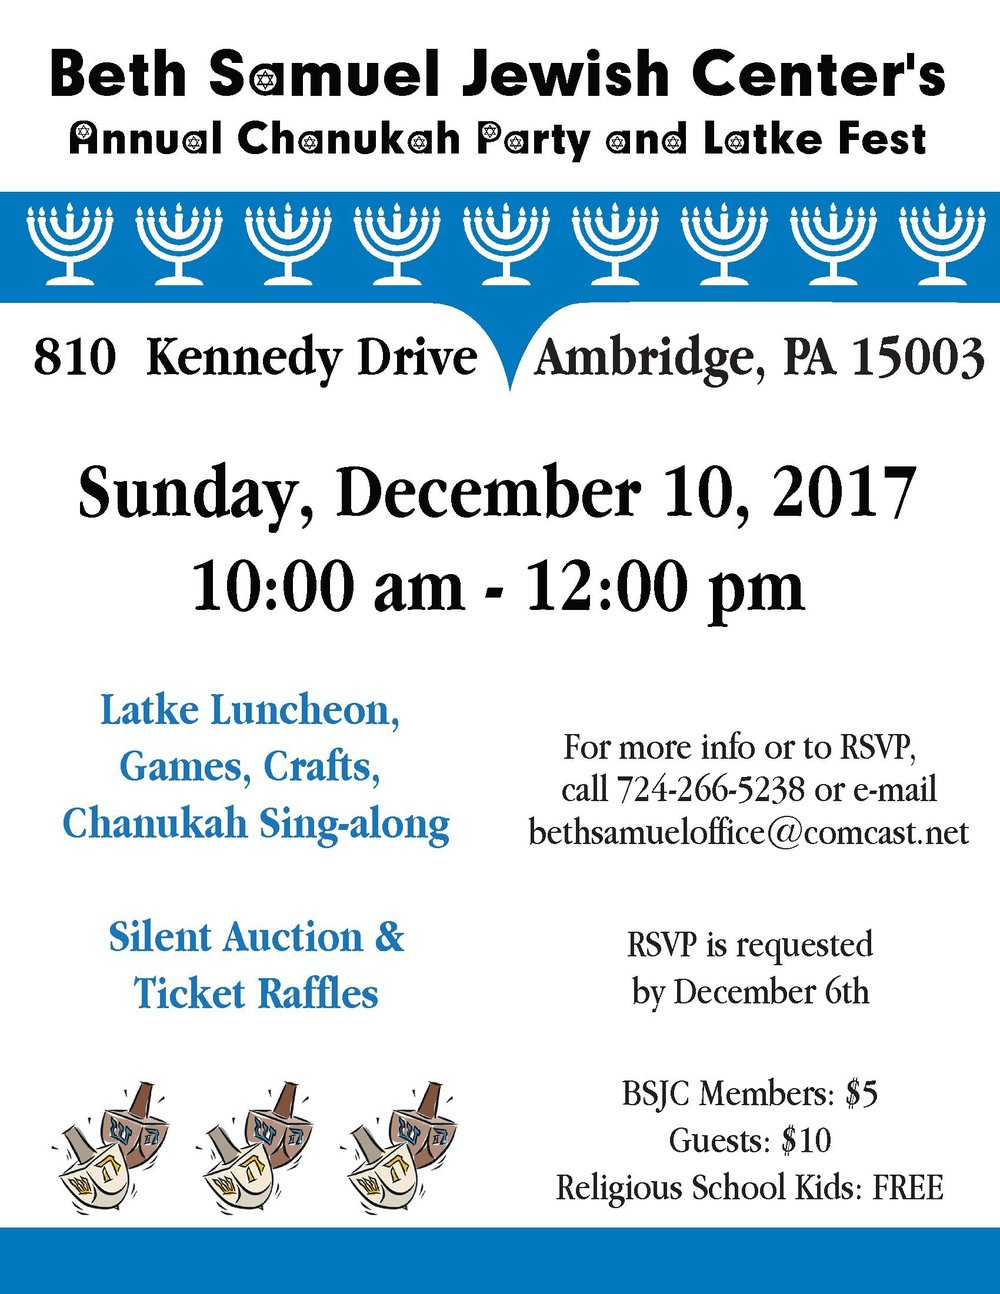 2017_Chanukah_Party_Flyer.jpg